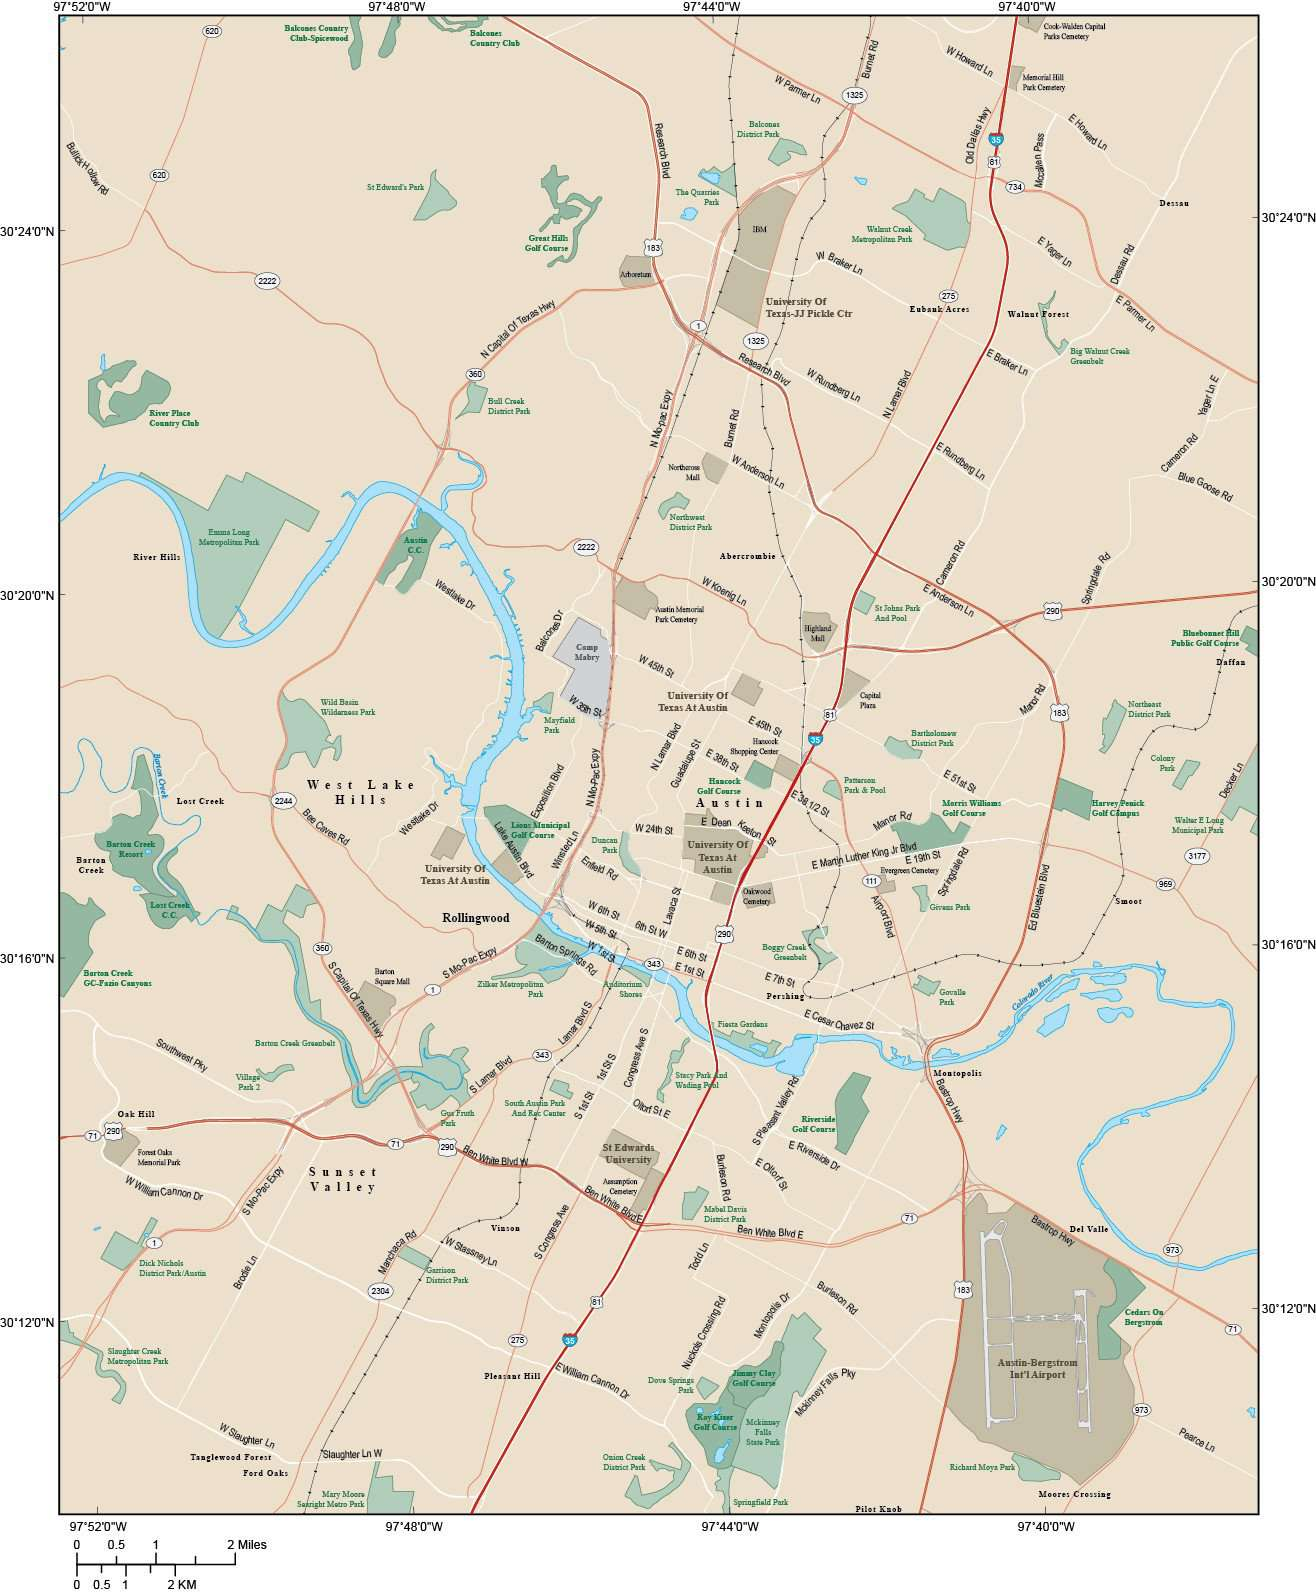 Road Map Of Austin Texas.Austin Tx Map Metro Area 285 Square Miles With Major Roads Only